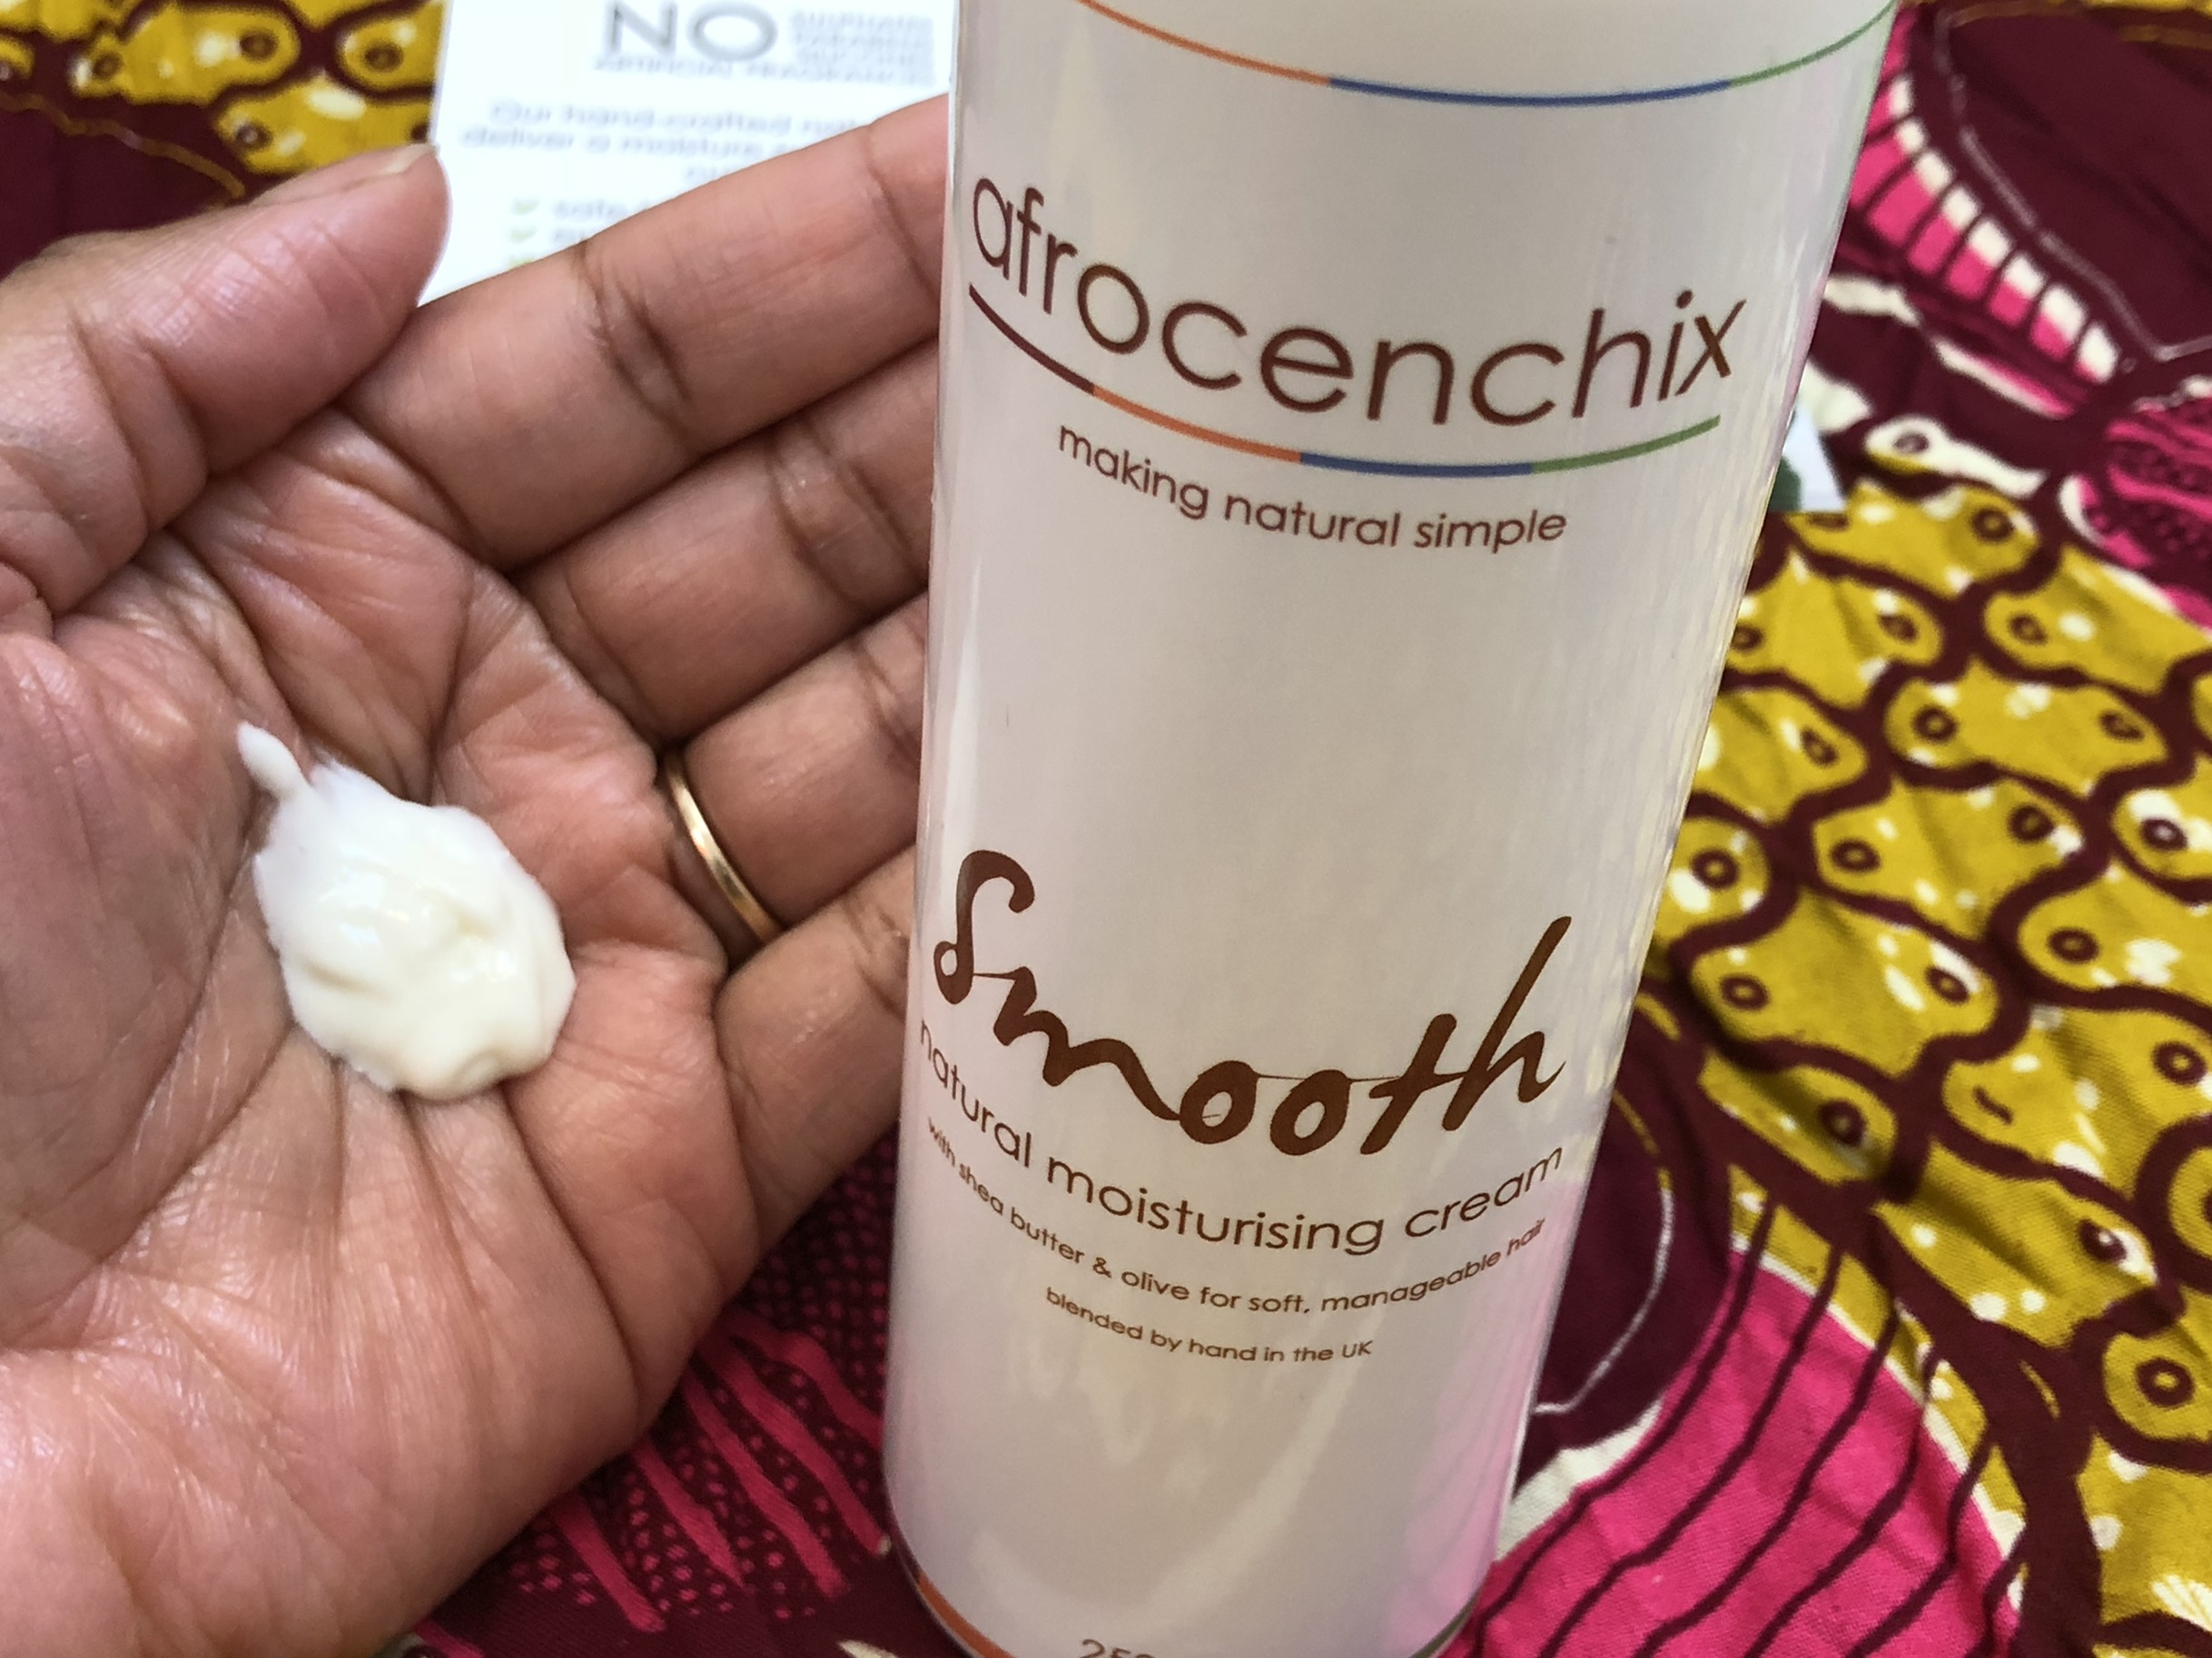 Afrocenchix Smooth - Natural Moisturising Cream